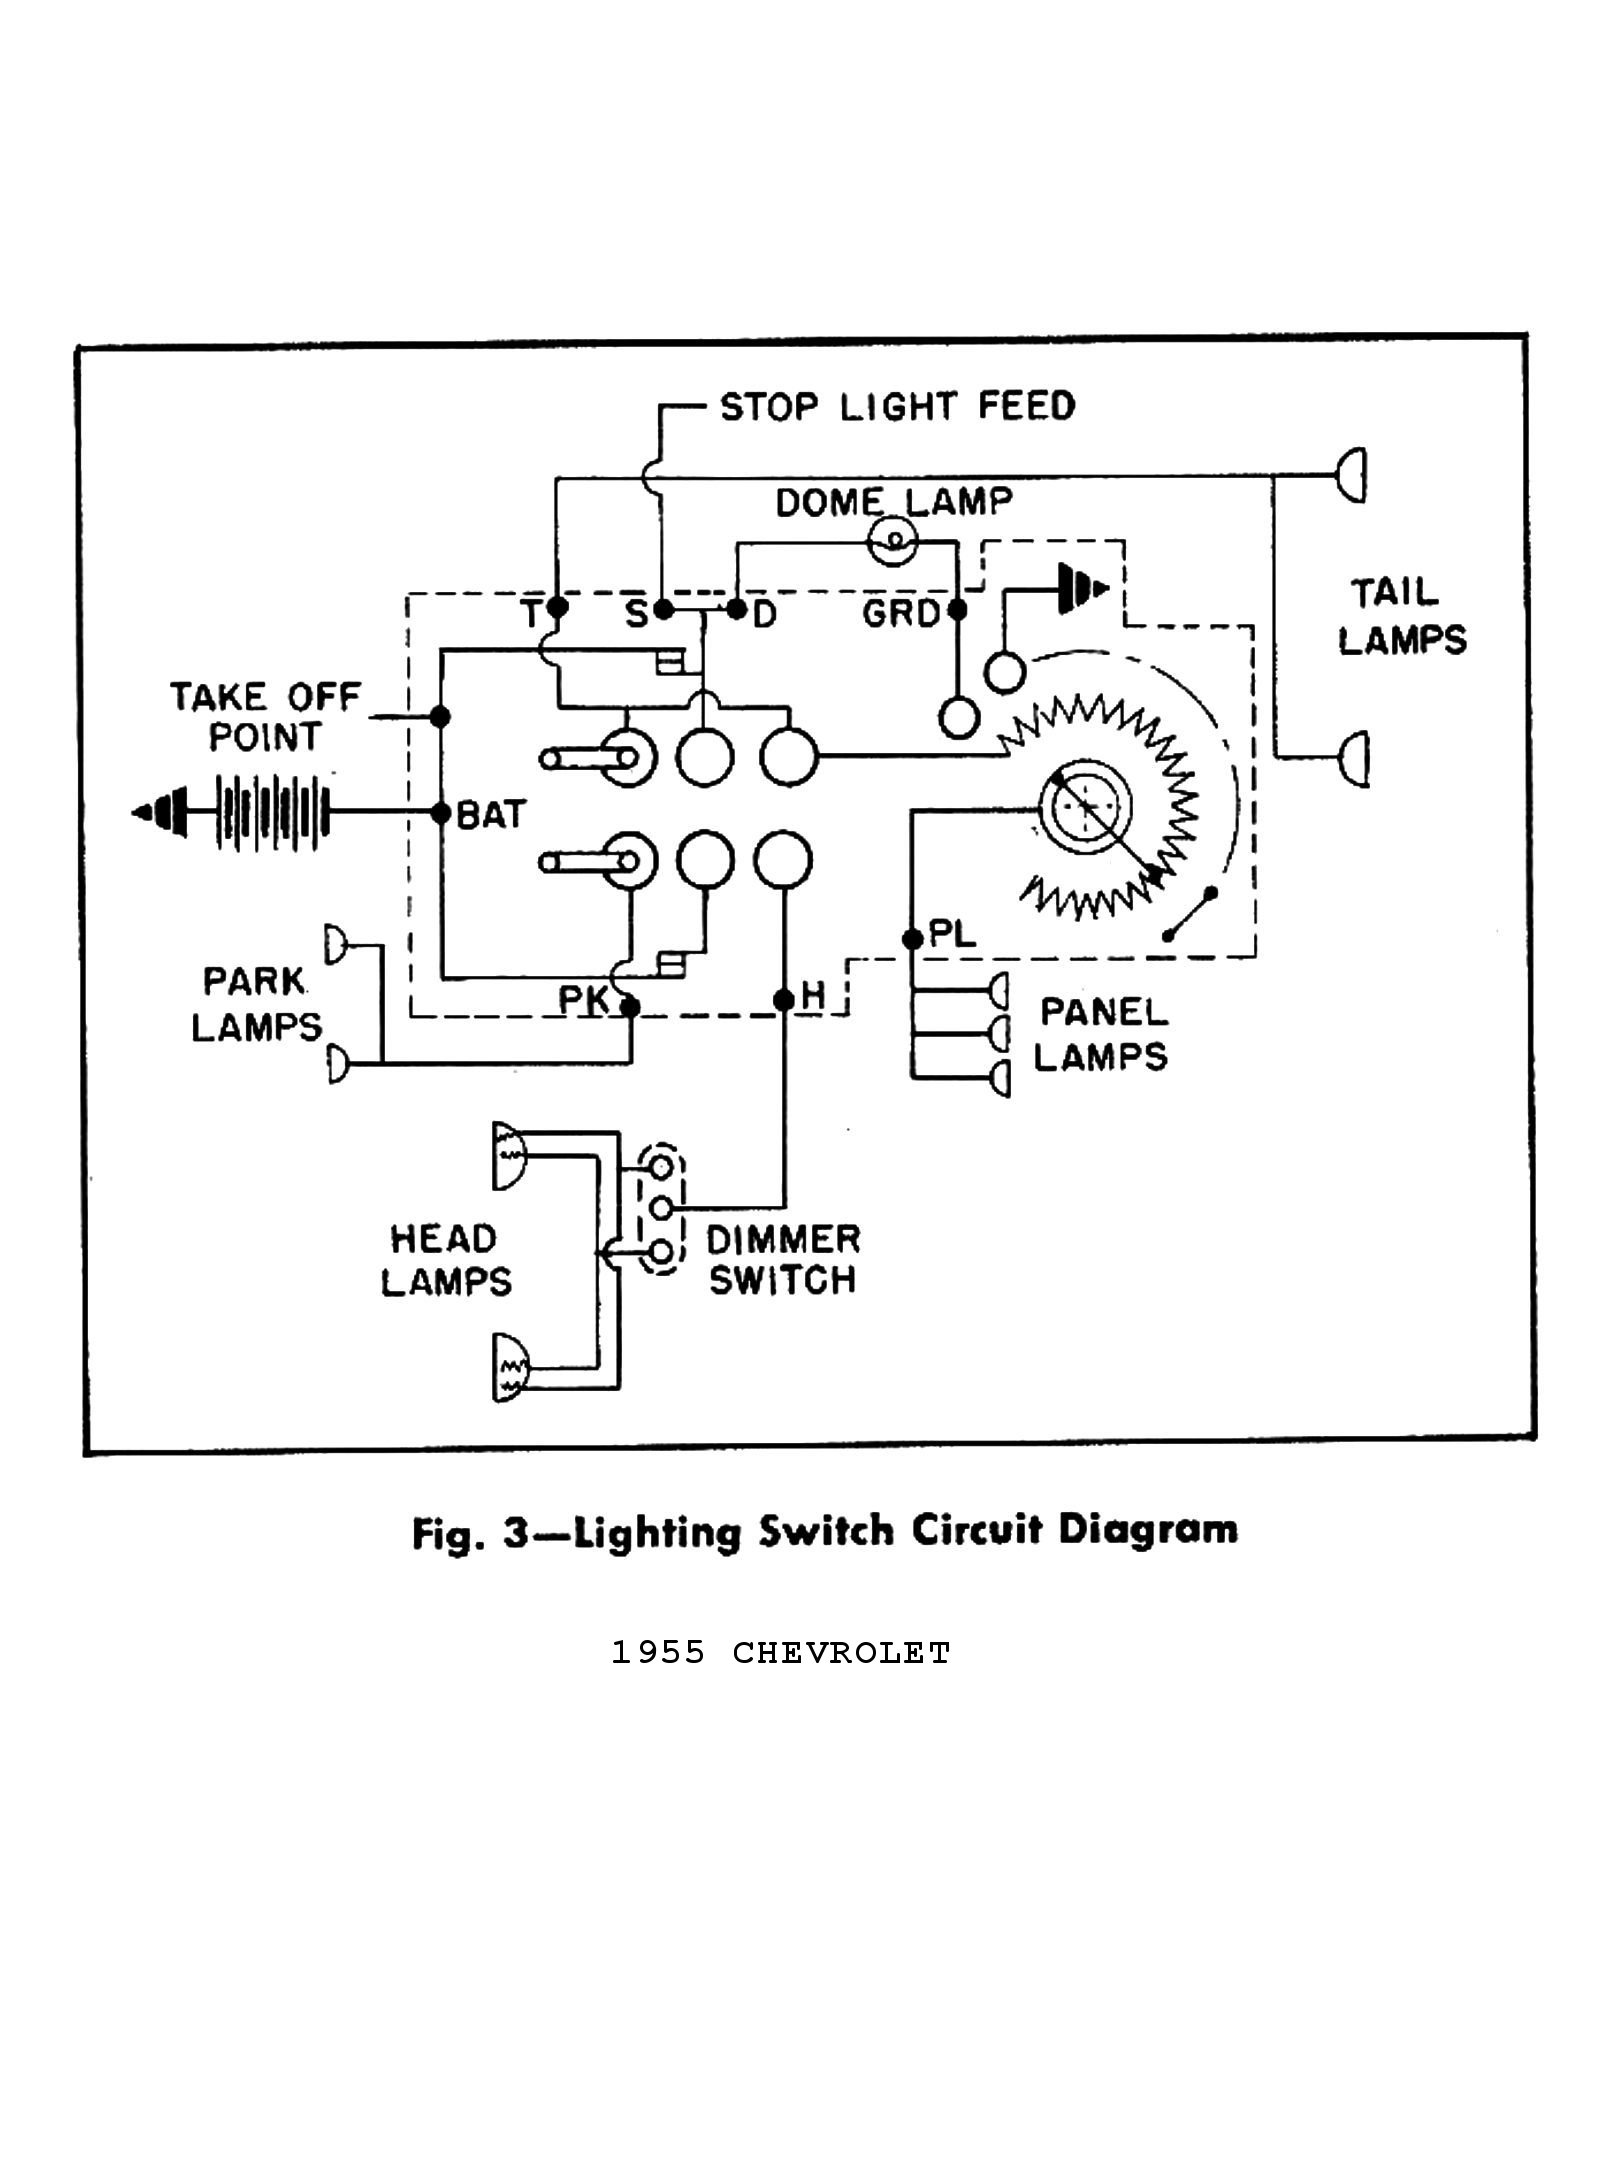 car light switch wiring diagram car image wiring chevy wiring diagrams on car light switch wiring diagram